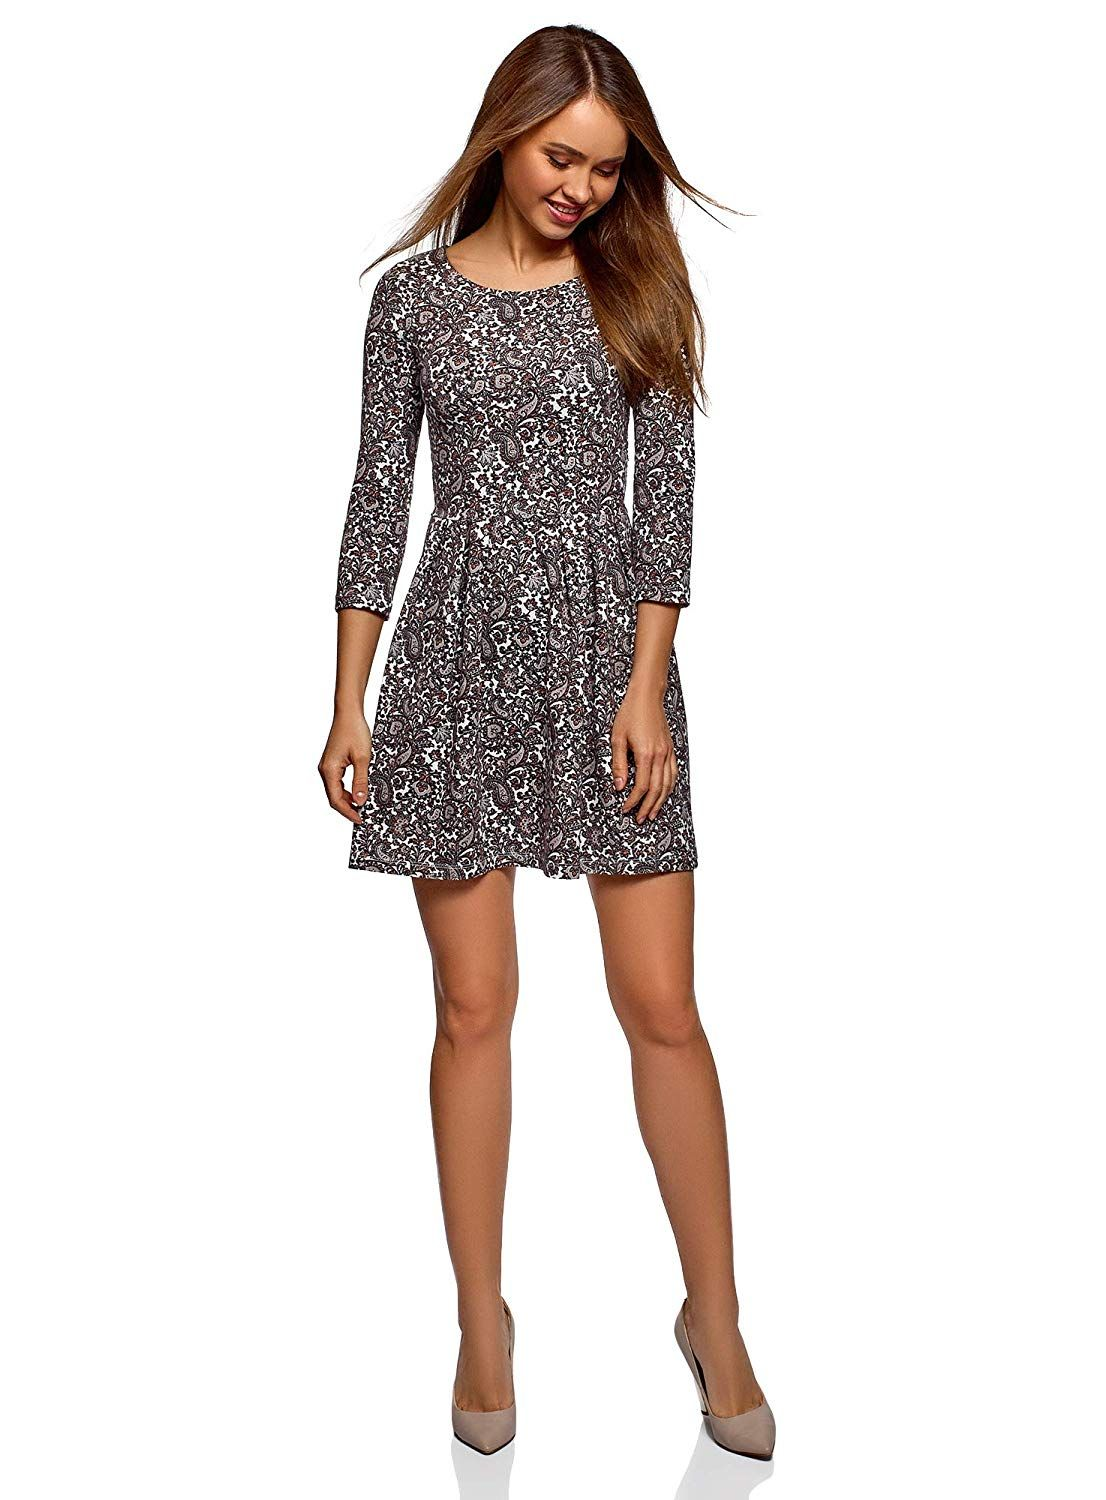 oodji #Ultra #Damen #Tailliertes #Jersey #Kleid: Amazon.de